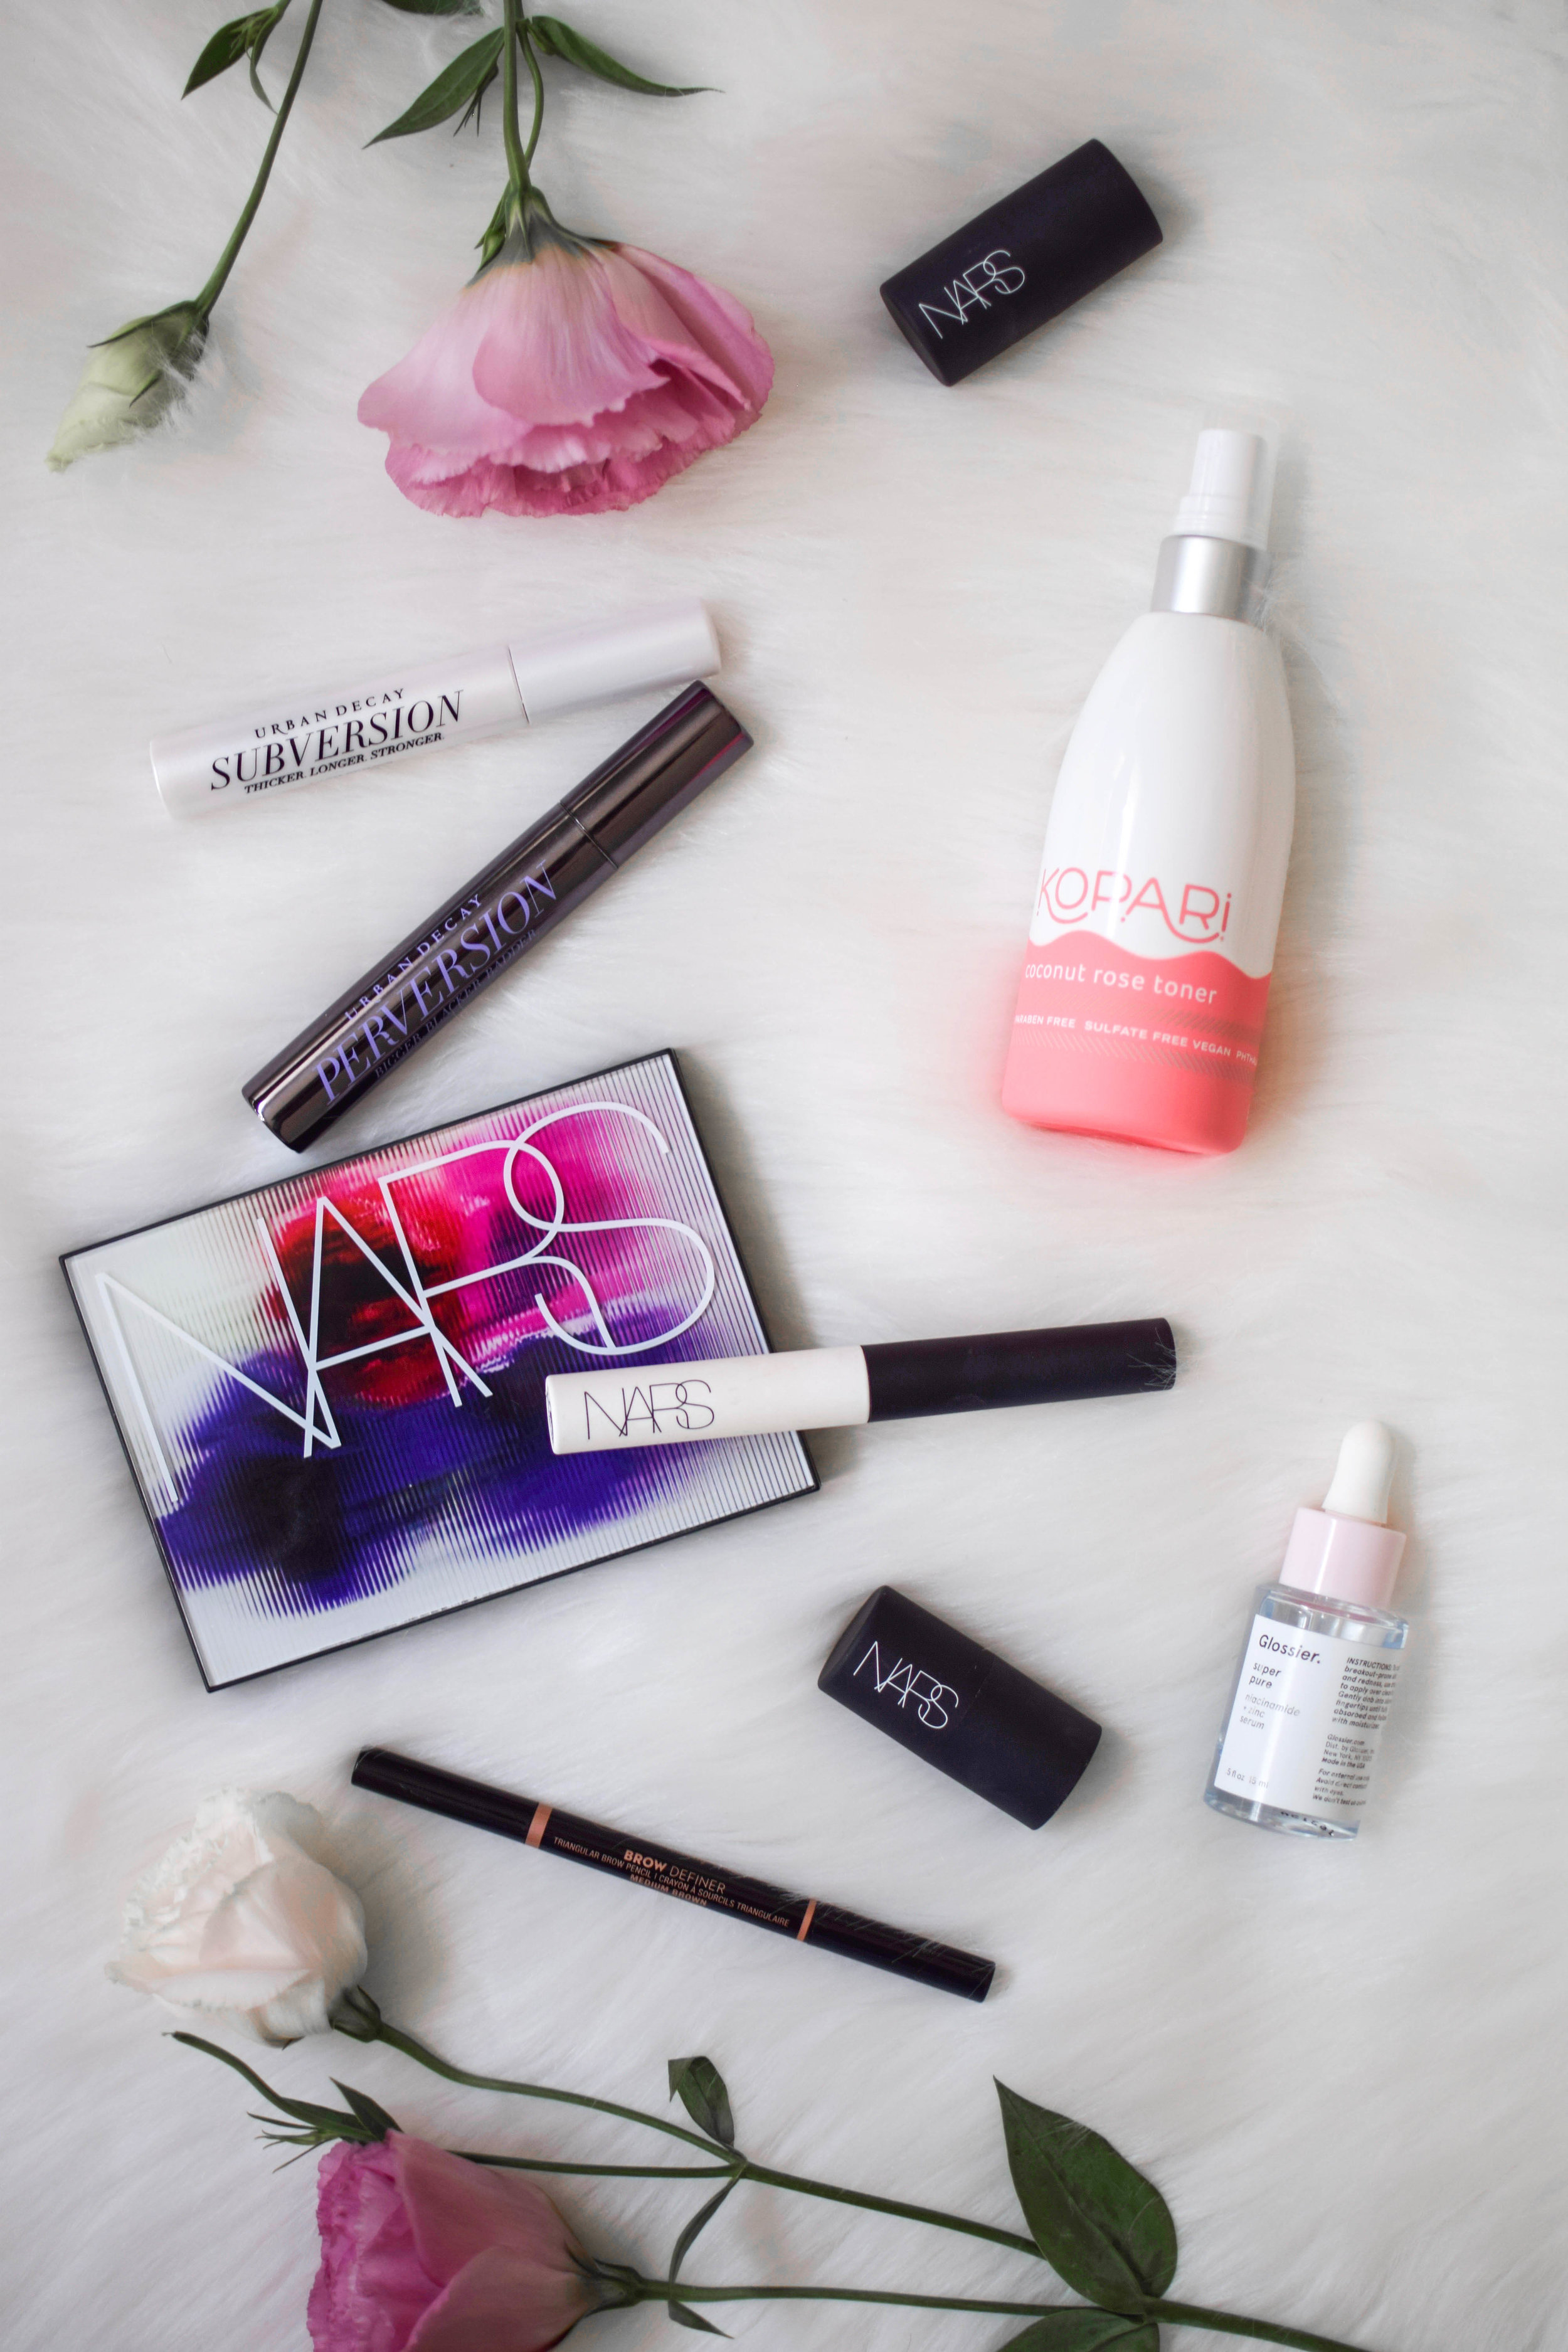 every day makeup routine / makeup product flat lay / beauty product flat lay / how to style a flat lay / nars / glossier / kopari / urban decay / Anastasia